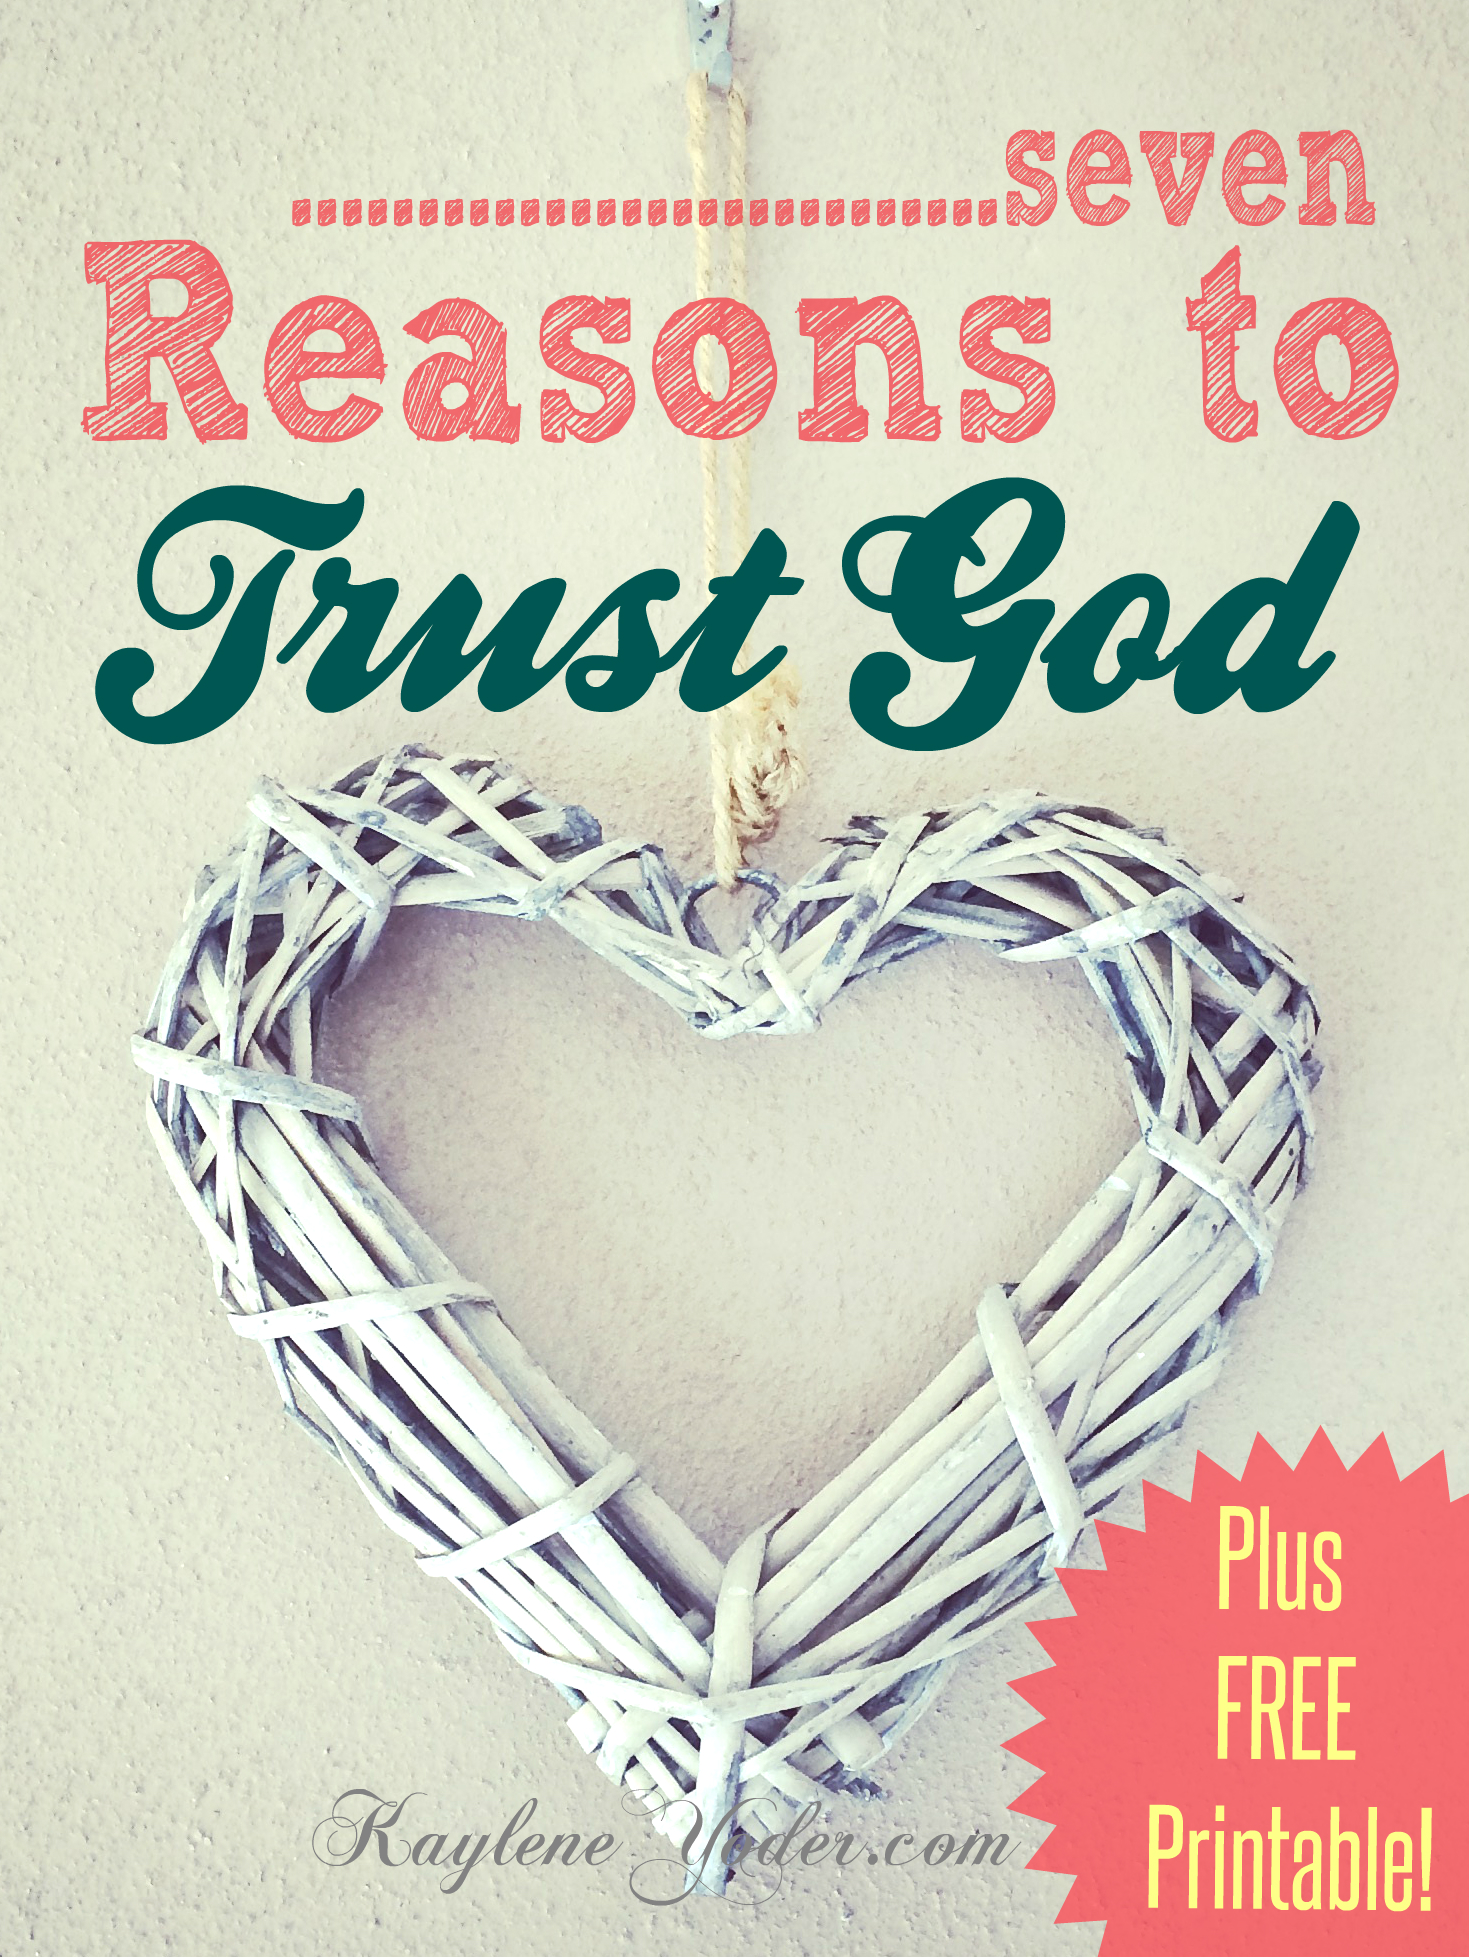 Seven reasons to trust God